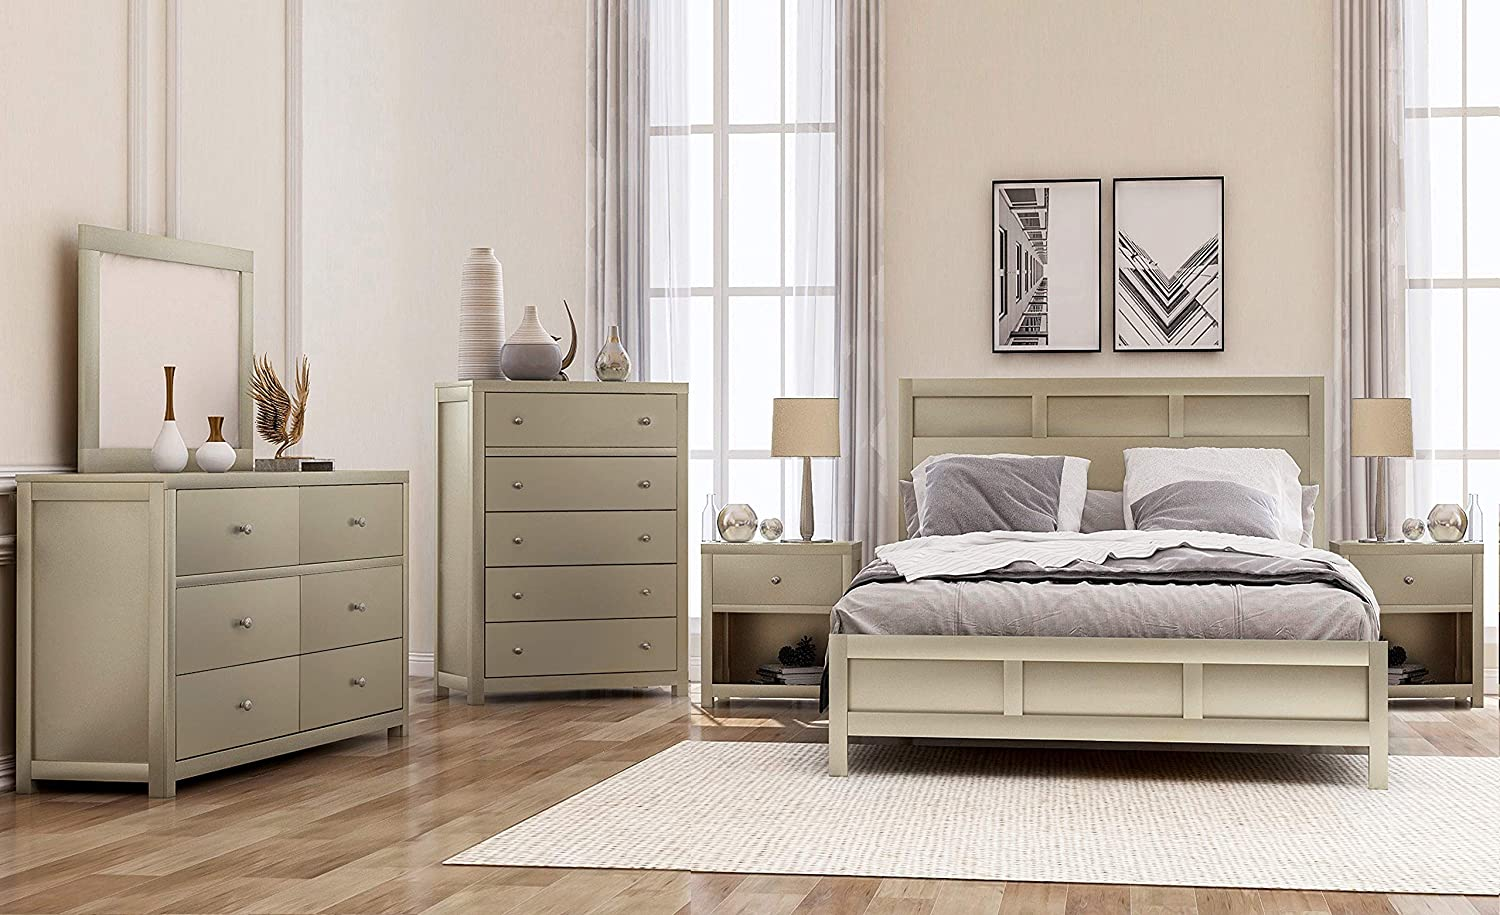 Amazon Com Softsea 6 Piece Furniture Set For Bedroom Modern Bedroom Sets With Solid Wood King Size Bed Frame 2 Nightstands 6 Drawer Double Dresser 5 Drawer Chest And Mirror Kitchen Dining